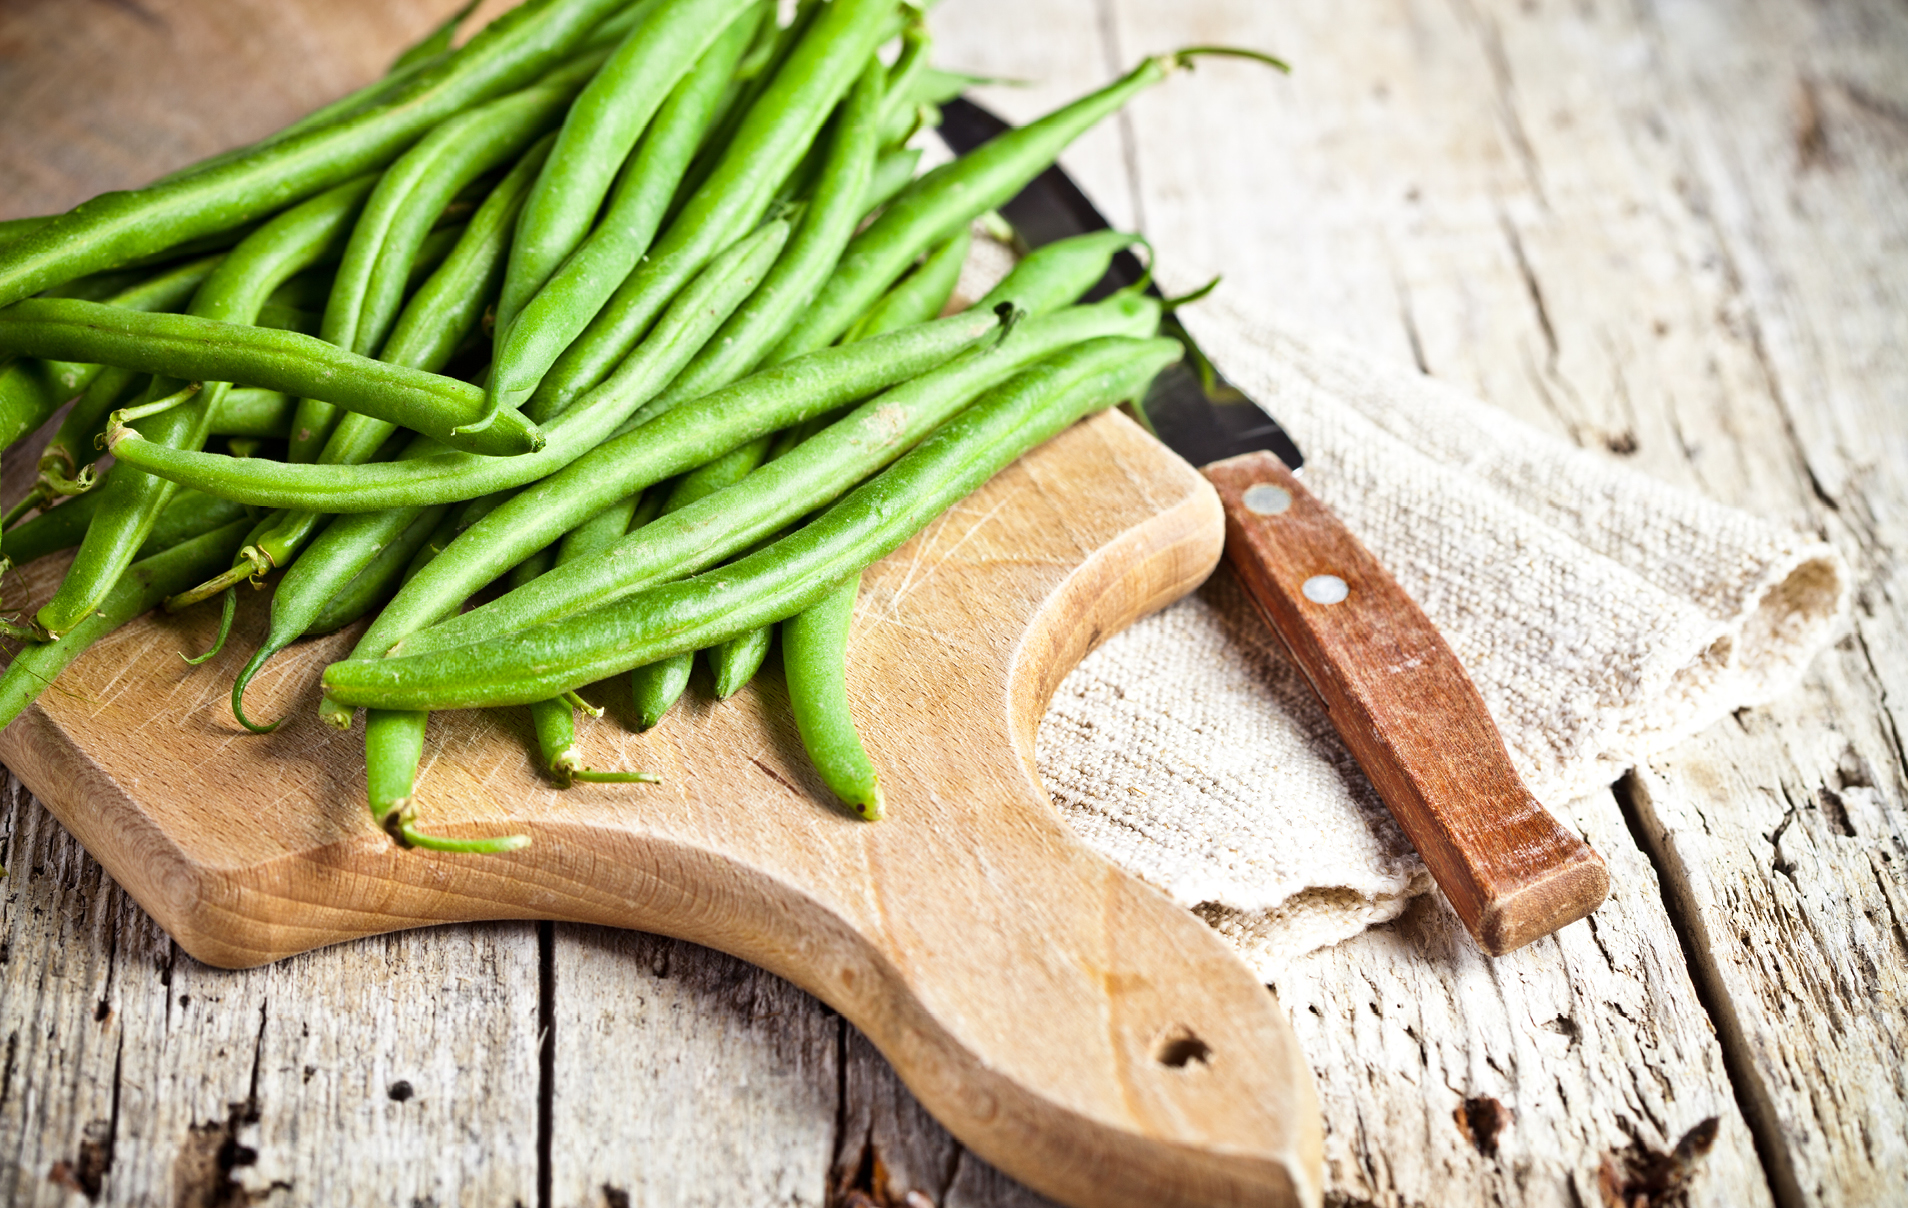 Add sliced almonds, pecans or pine nuts to make your green beans a special side dish